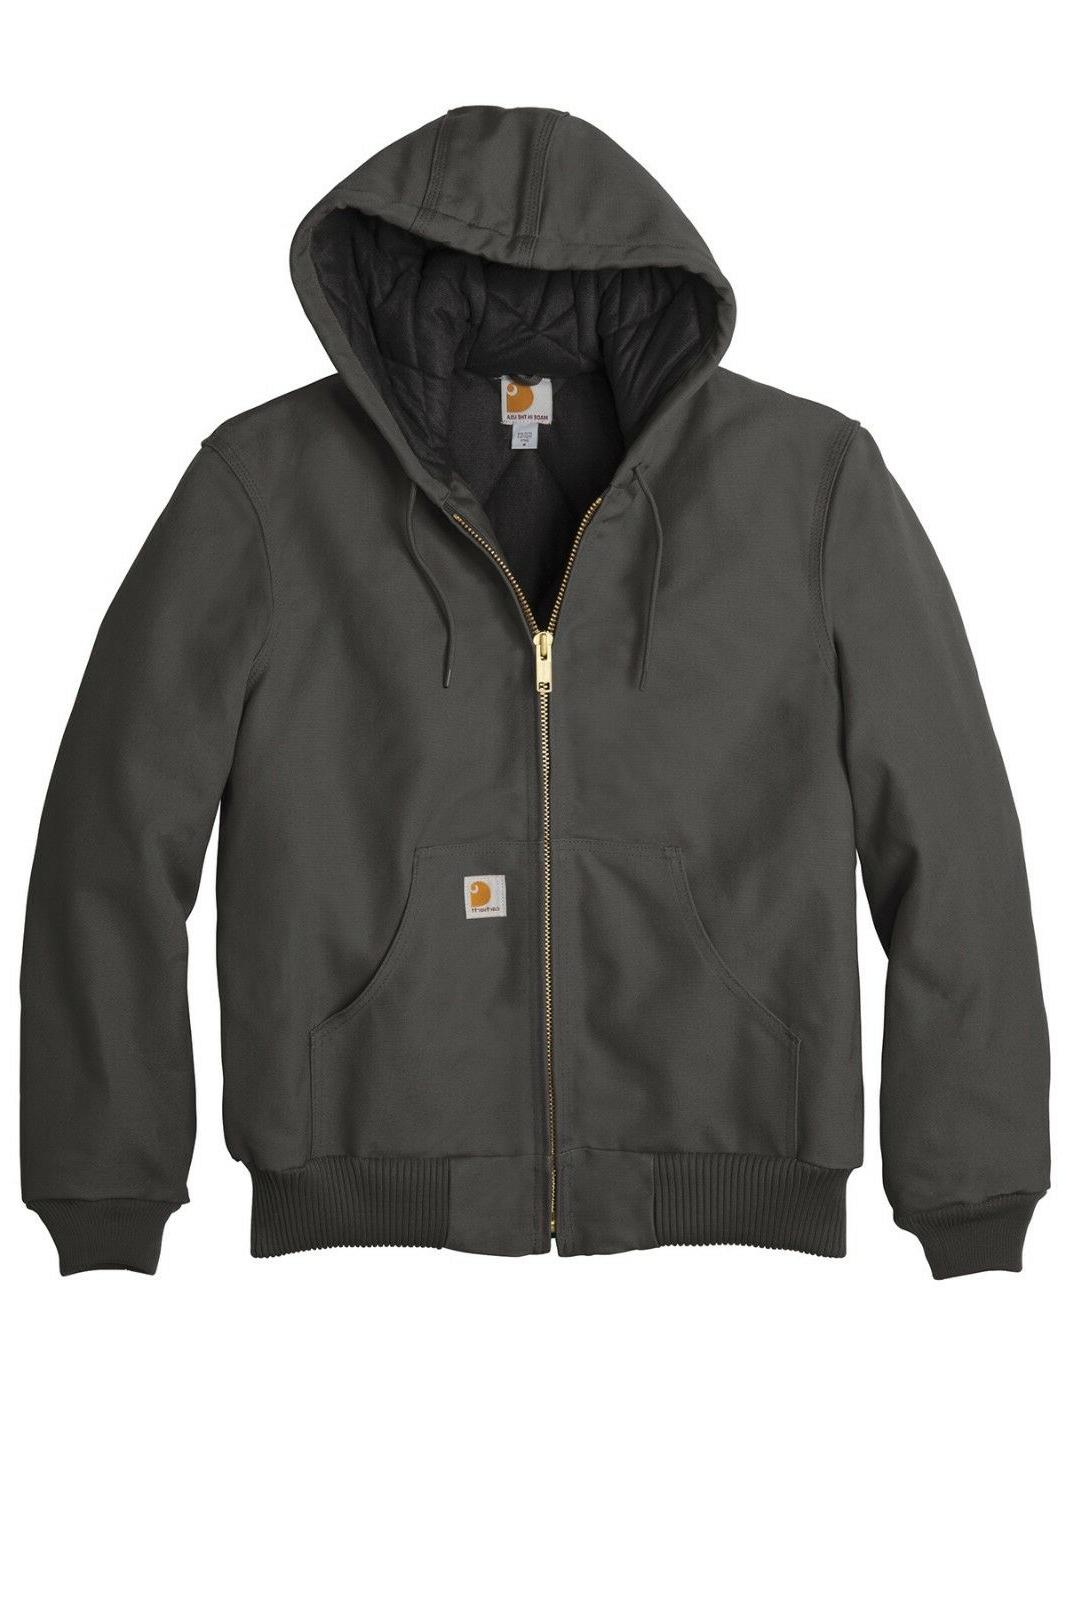 Carhartt Quilted Flannel Lined Duck Active JACKET, Hooded, Big & Mens J140